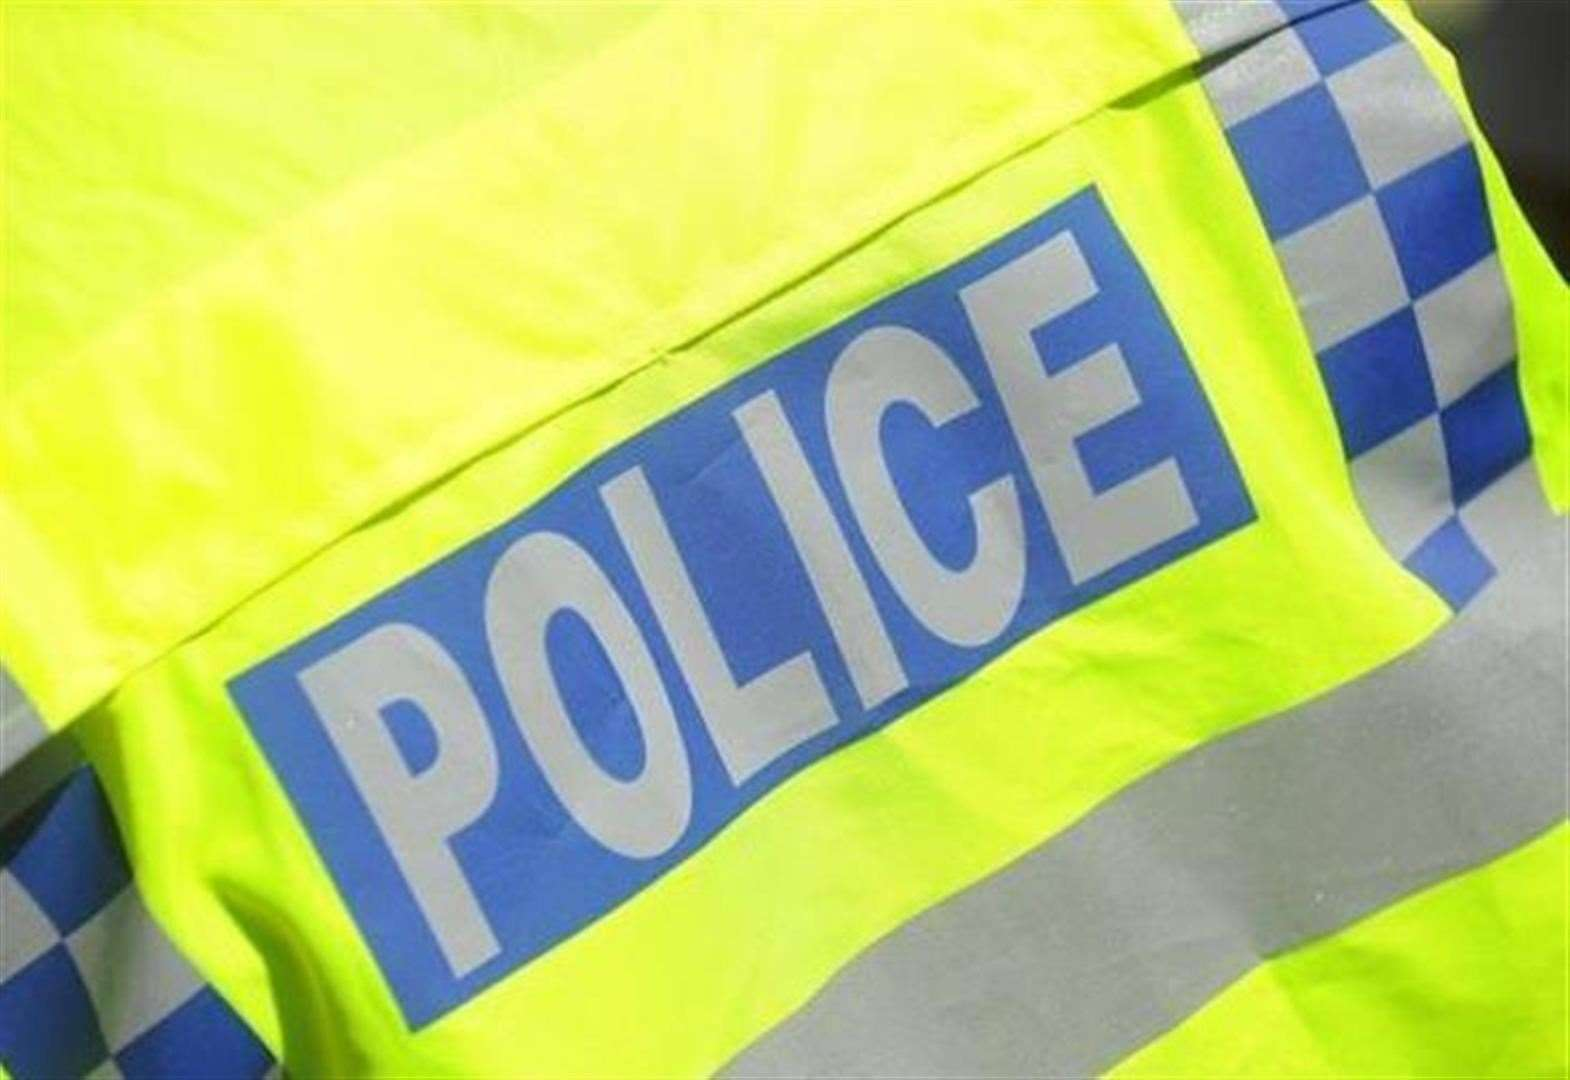 Man arrested in Newmarket on suspicion of rape, common assault and causing actual bodily harm